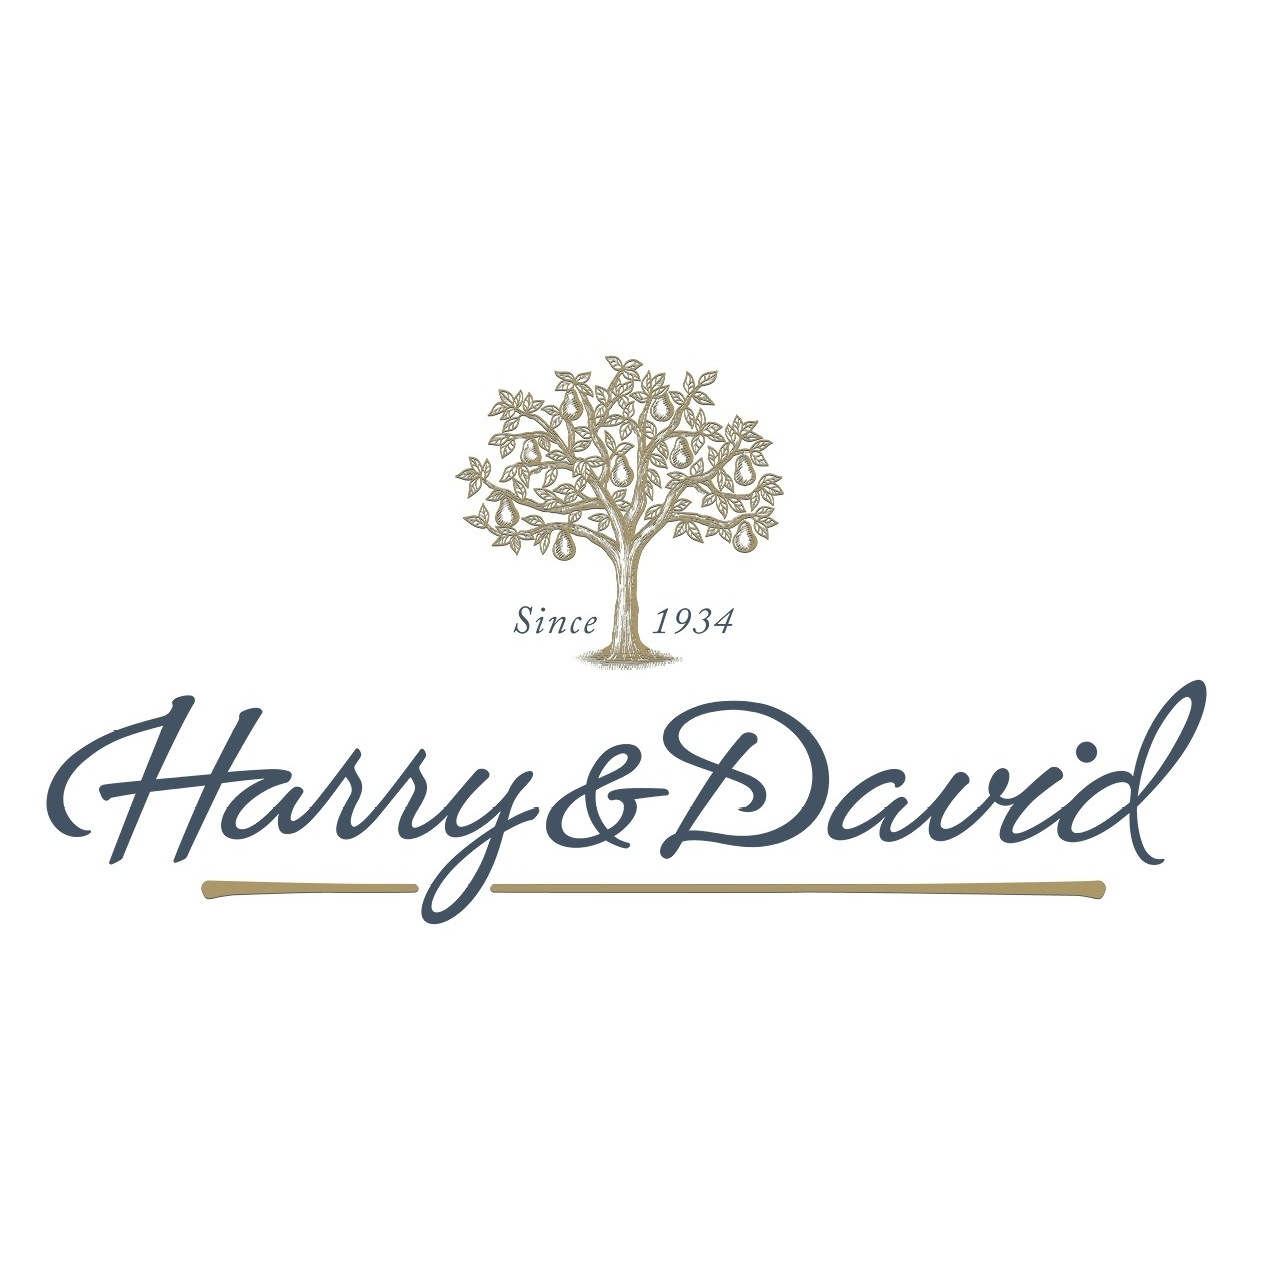 Harry and David - CLOSED